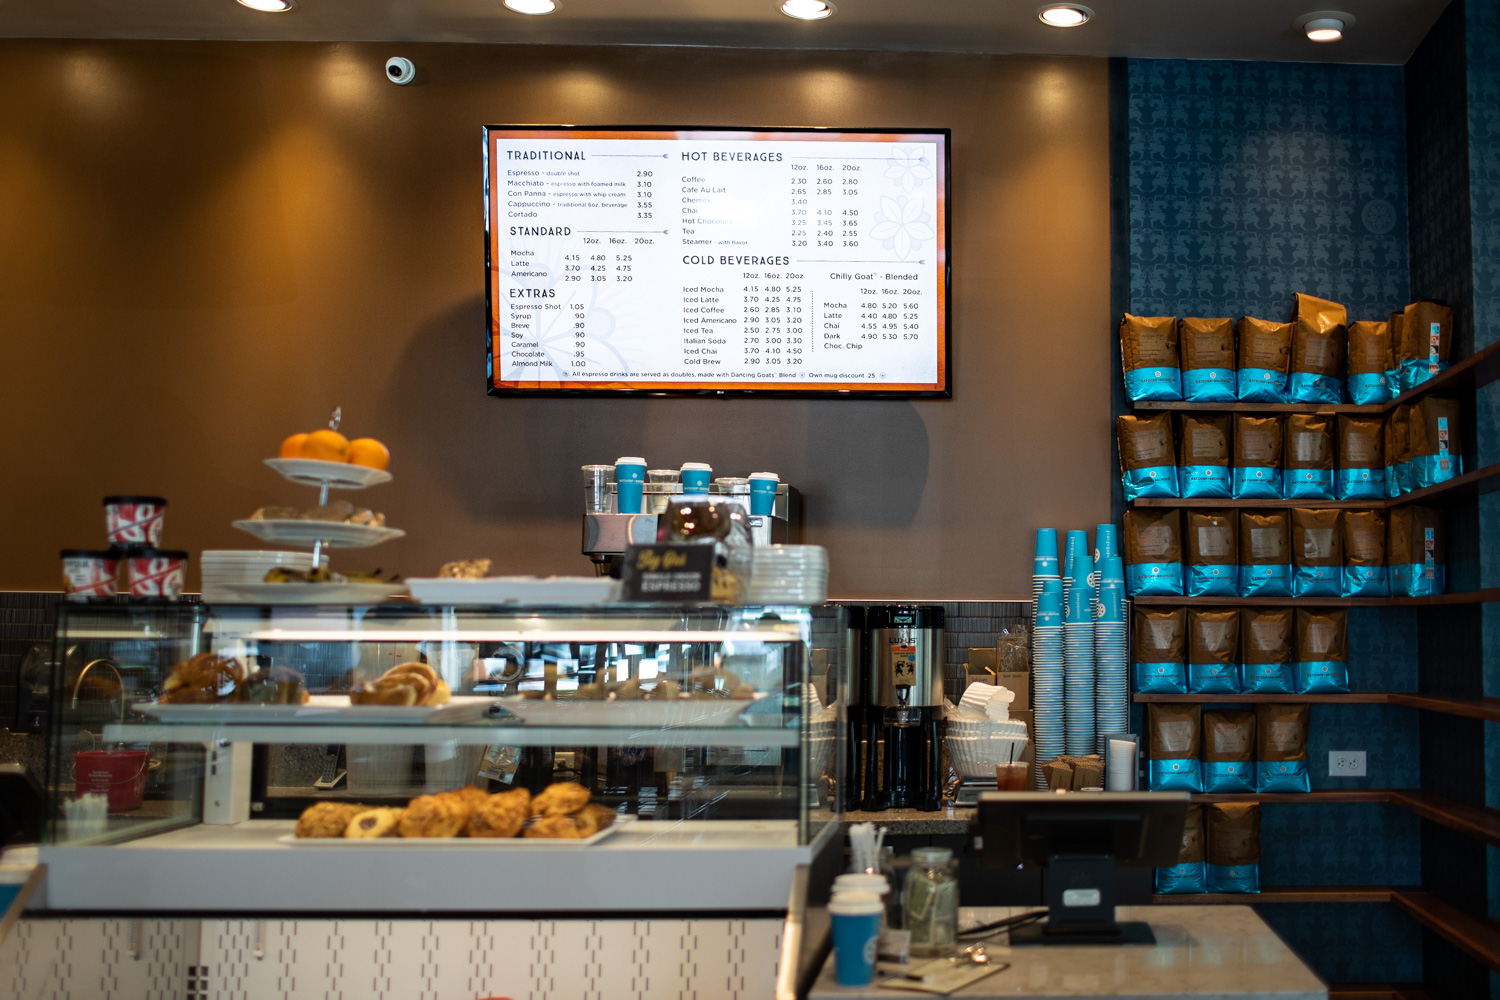 The menu offers traditional coffee options as well as teas.